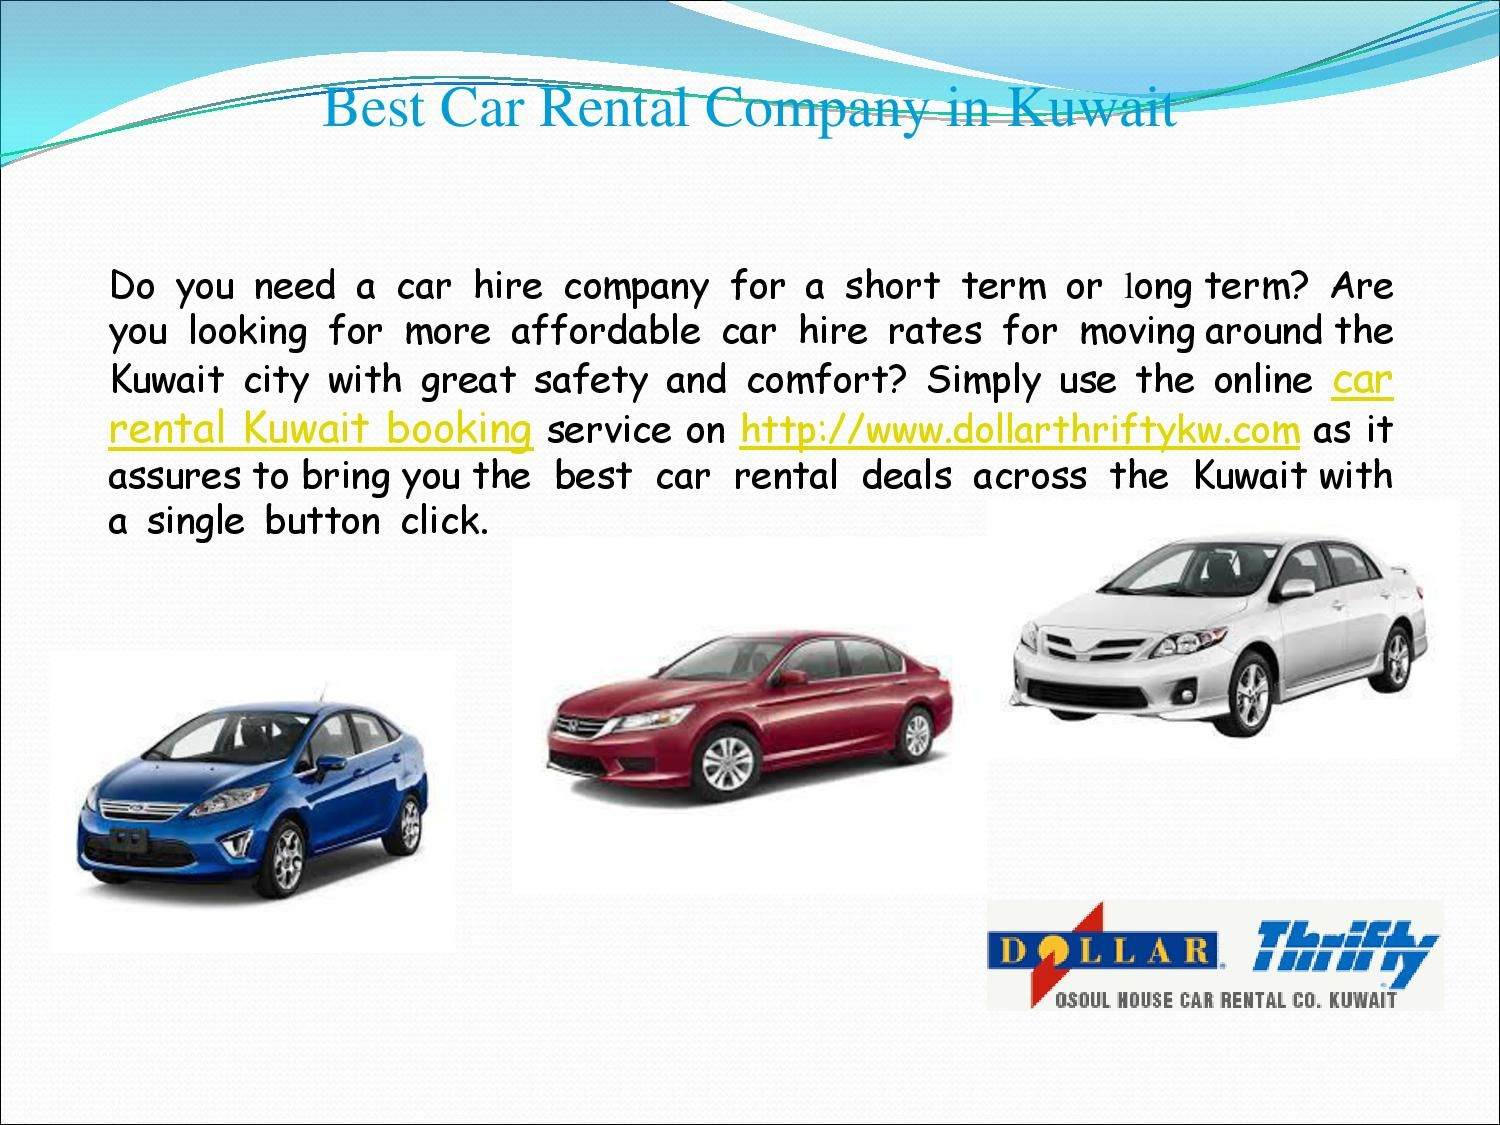 Contact dollar thrifty for car rental services in kuwait airport and city at the most affordable